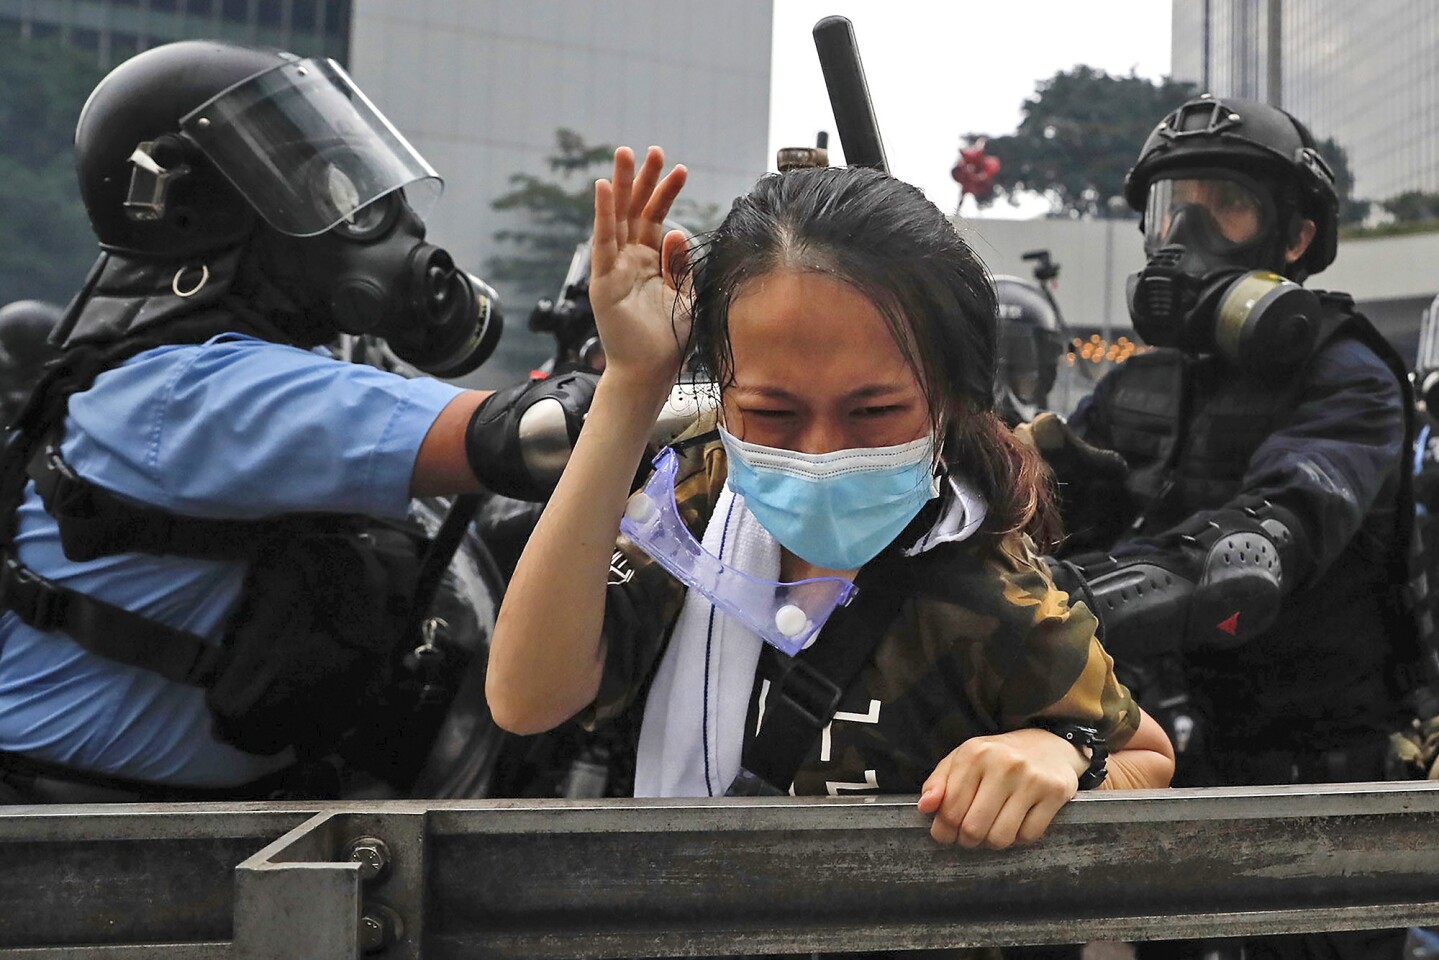 Riot police confront a protester during a massive demonstration in Hong Kong on June 12.